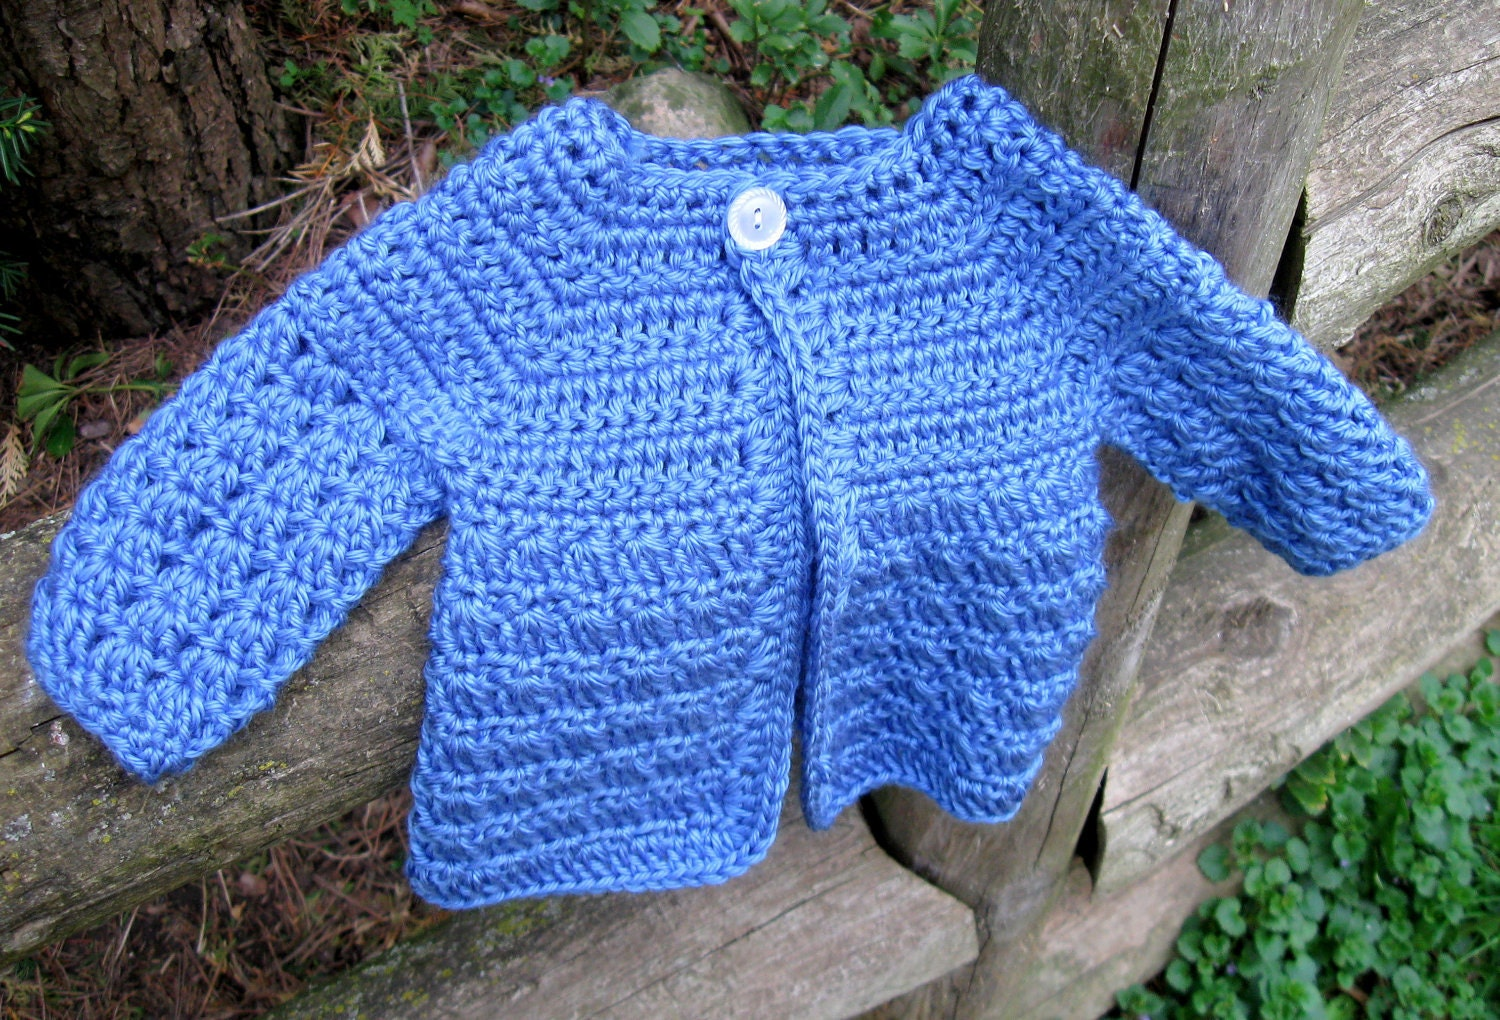 Crochet Baby Jacket Pattern : Crochet Patterns Baby Sweater